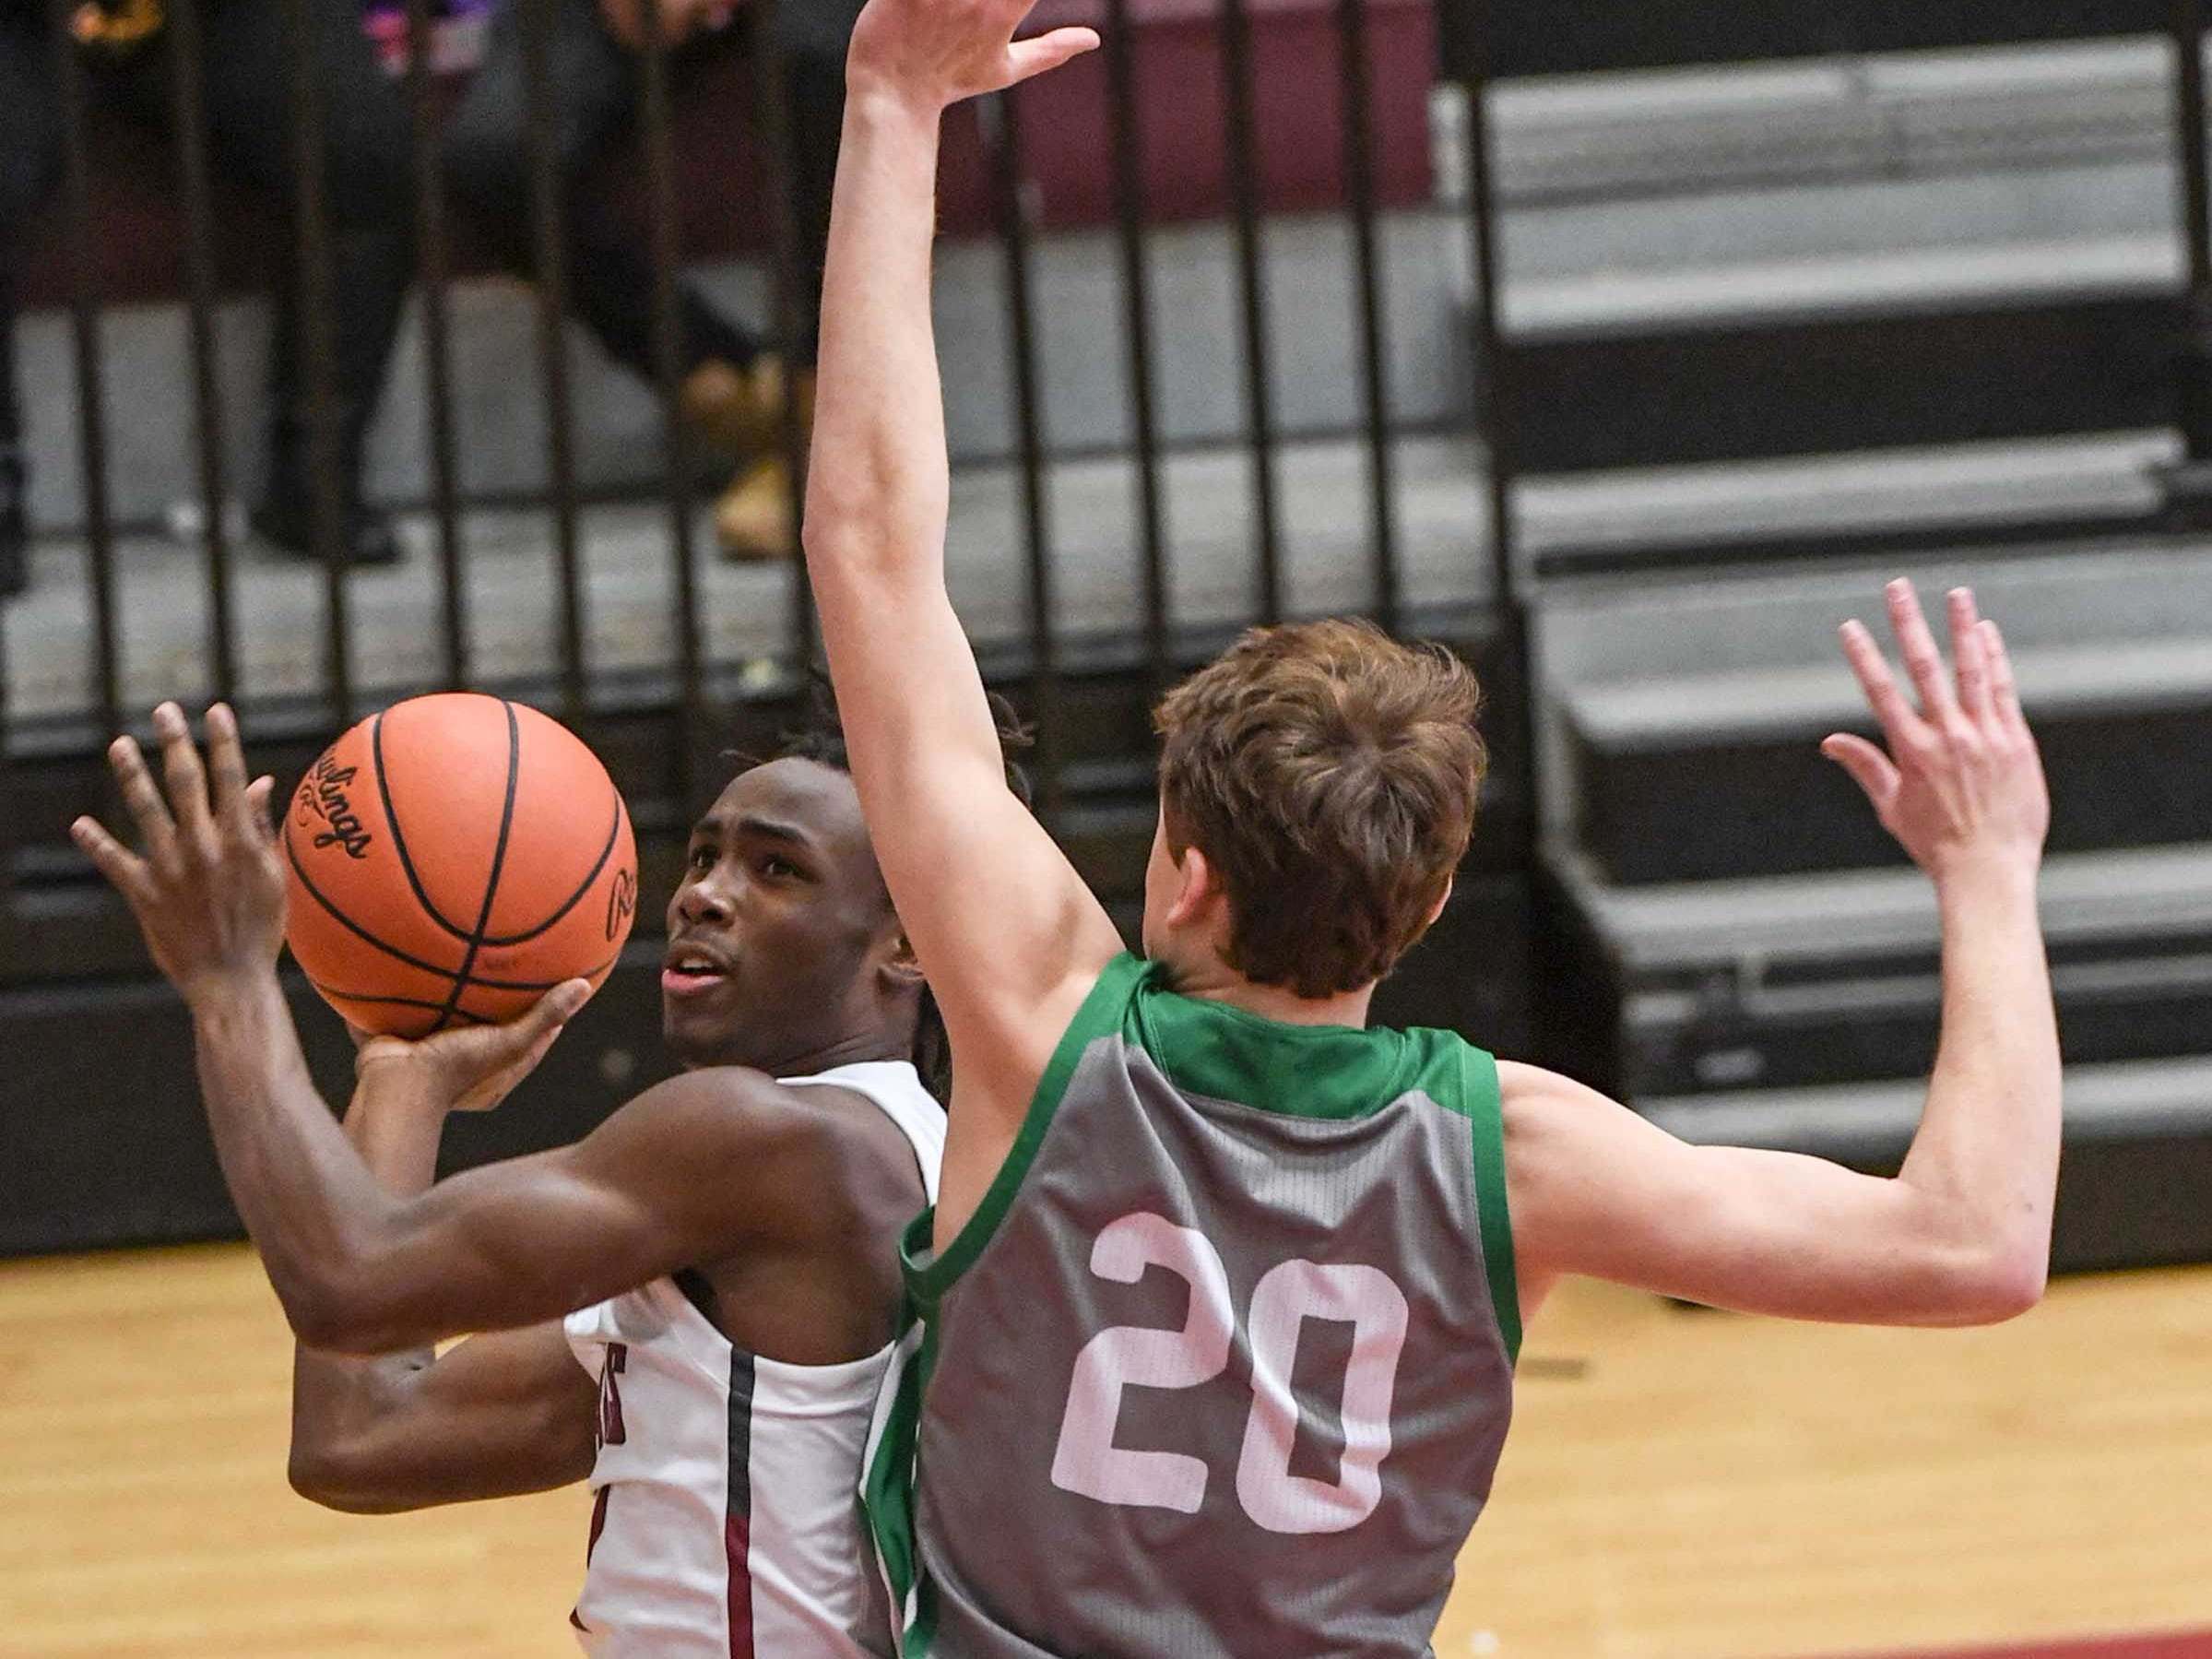 Westside junior Tyson Lewis(1) shoots near Easley senior Matt Nunnery(20) during the first quarter at Westside High School in Anderson on Friday.